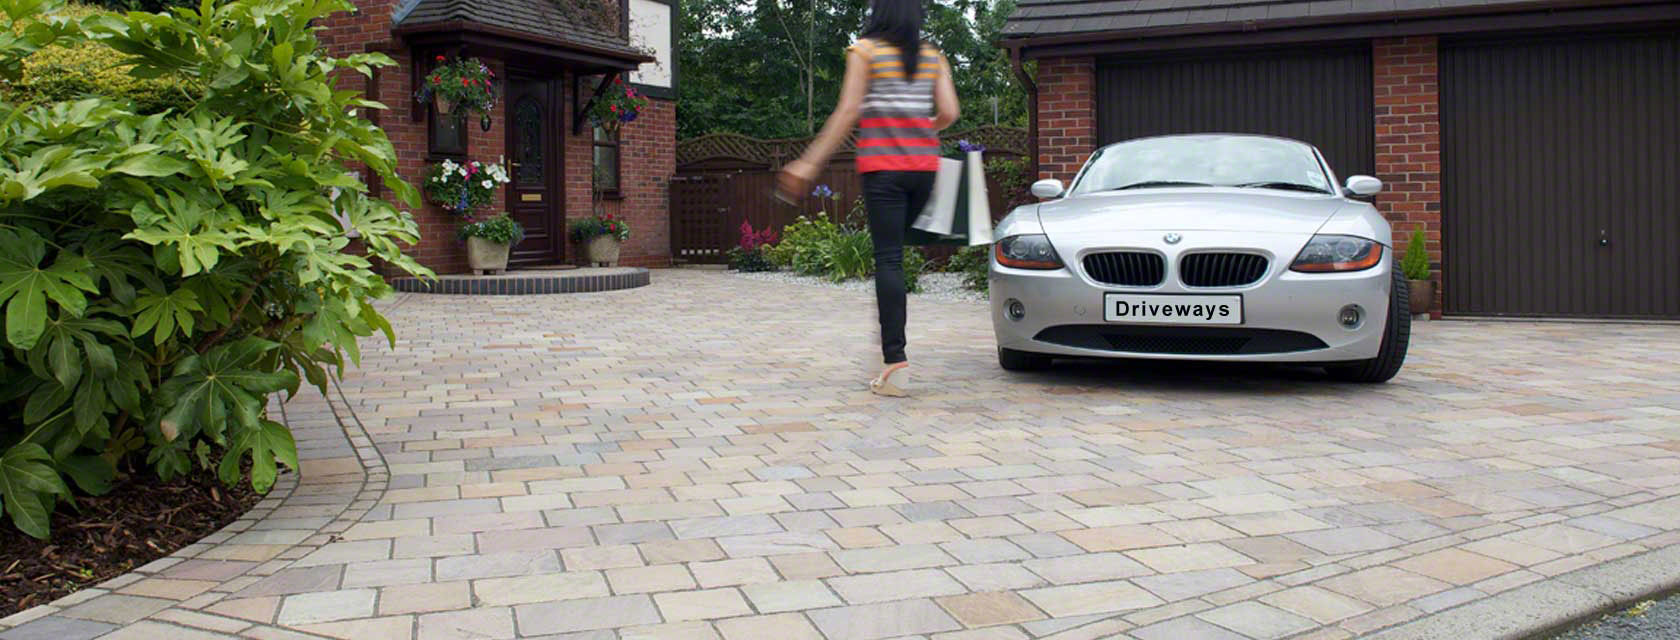 Fairstone Driveway Setts Manchester